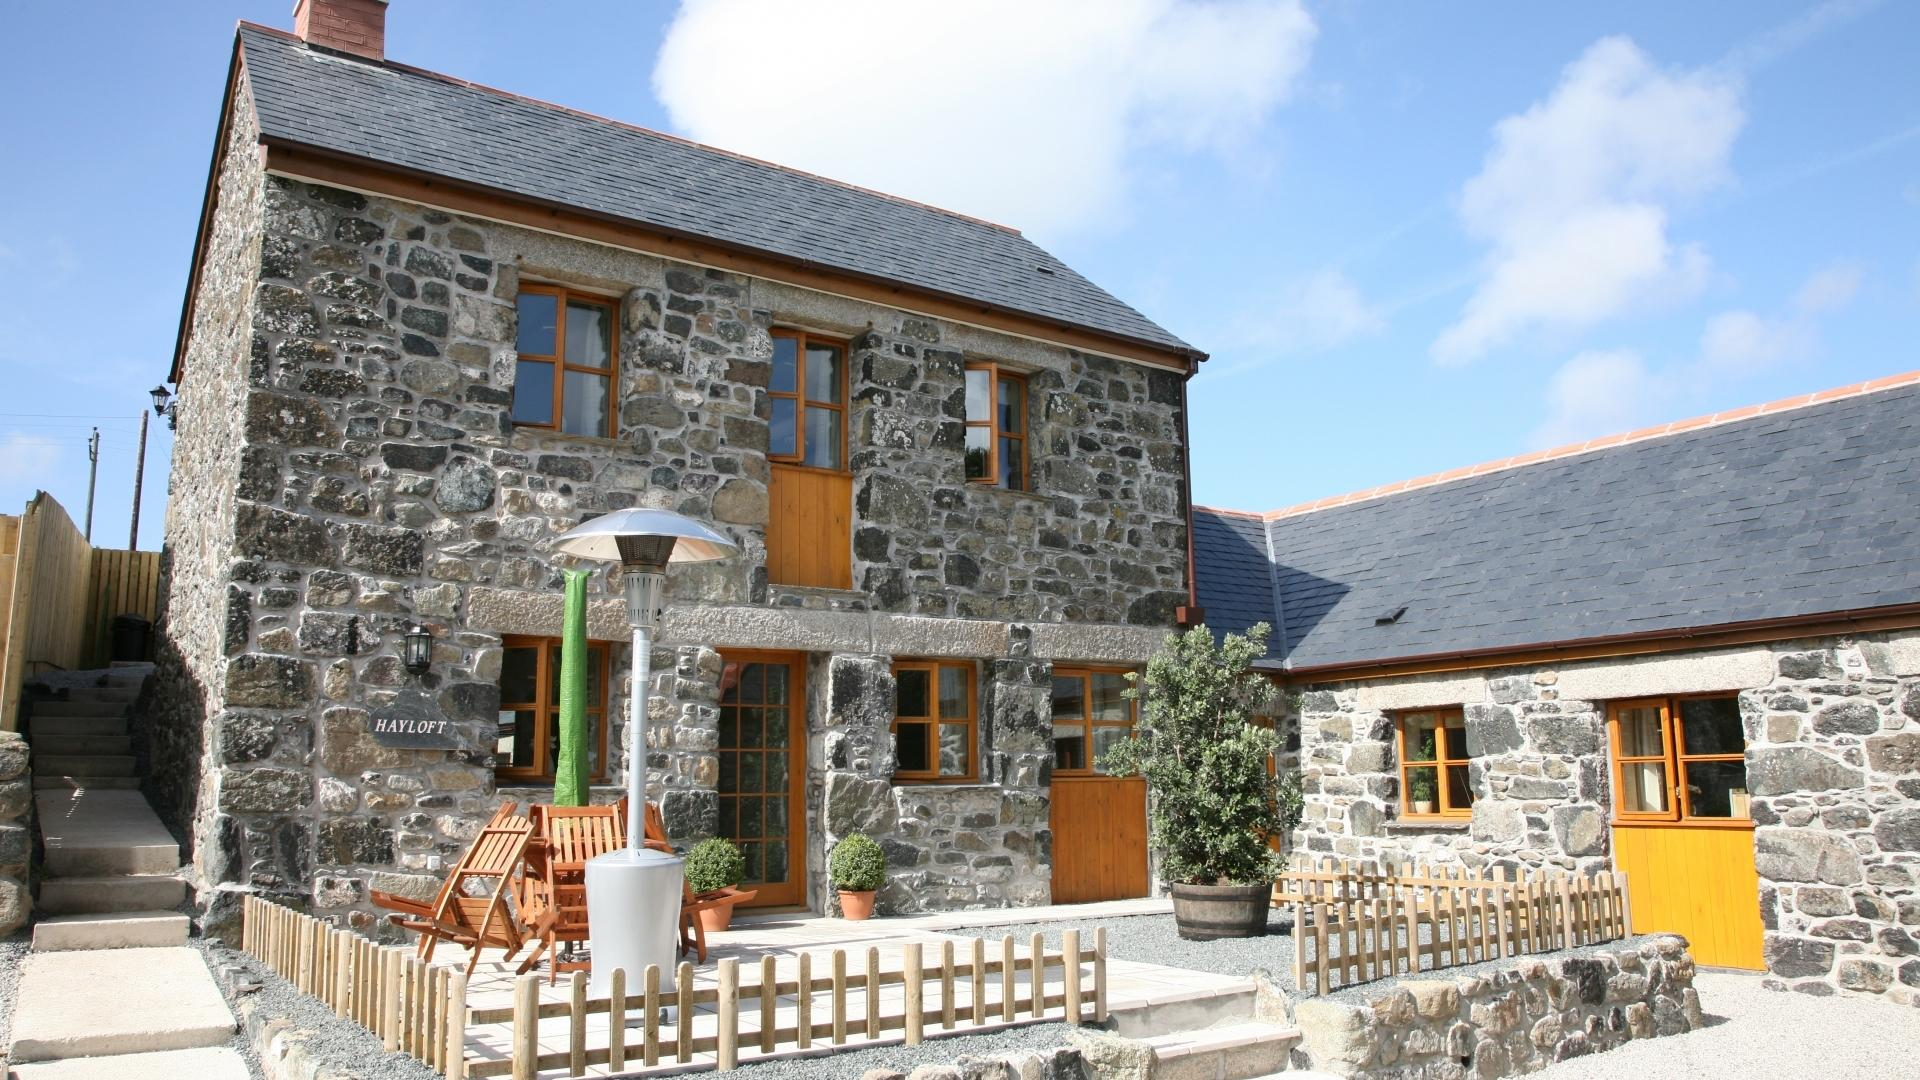 3 Bedroom Cottage in Cornwall, United Kingdom